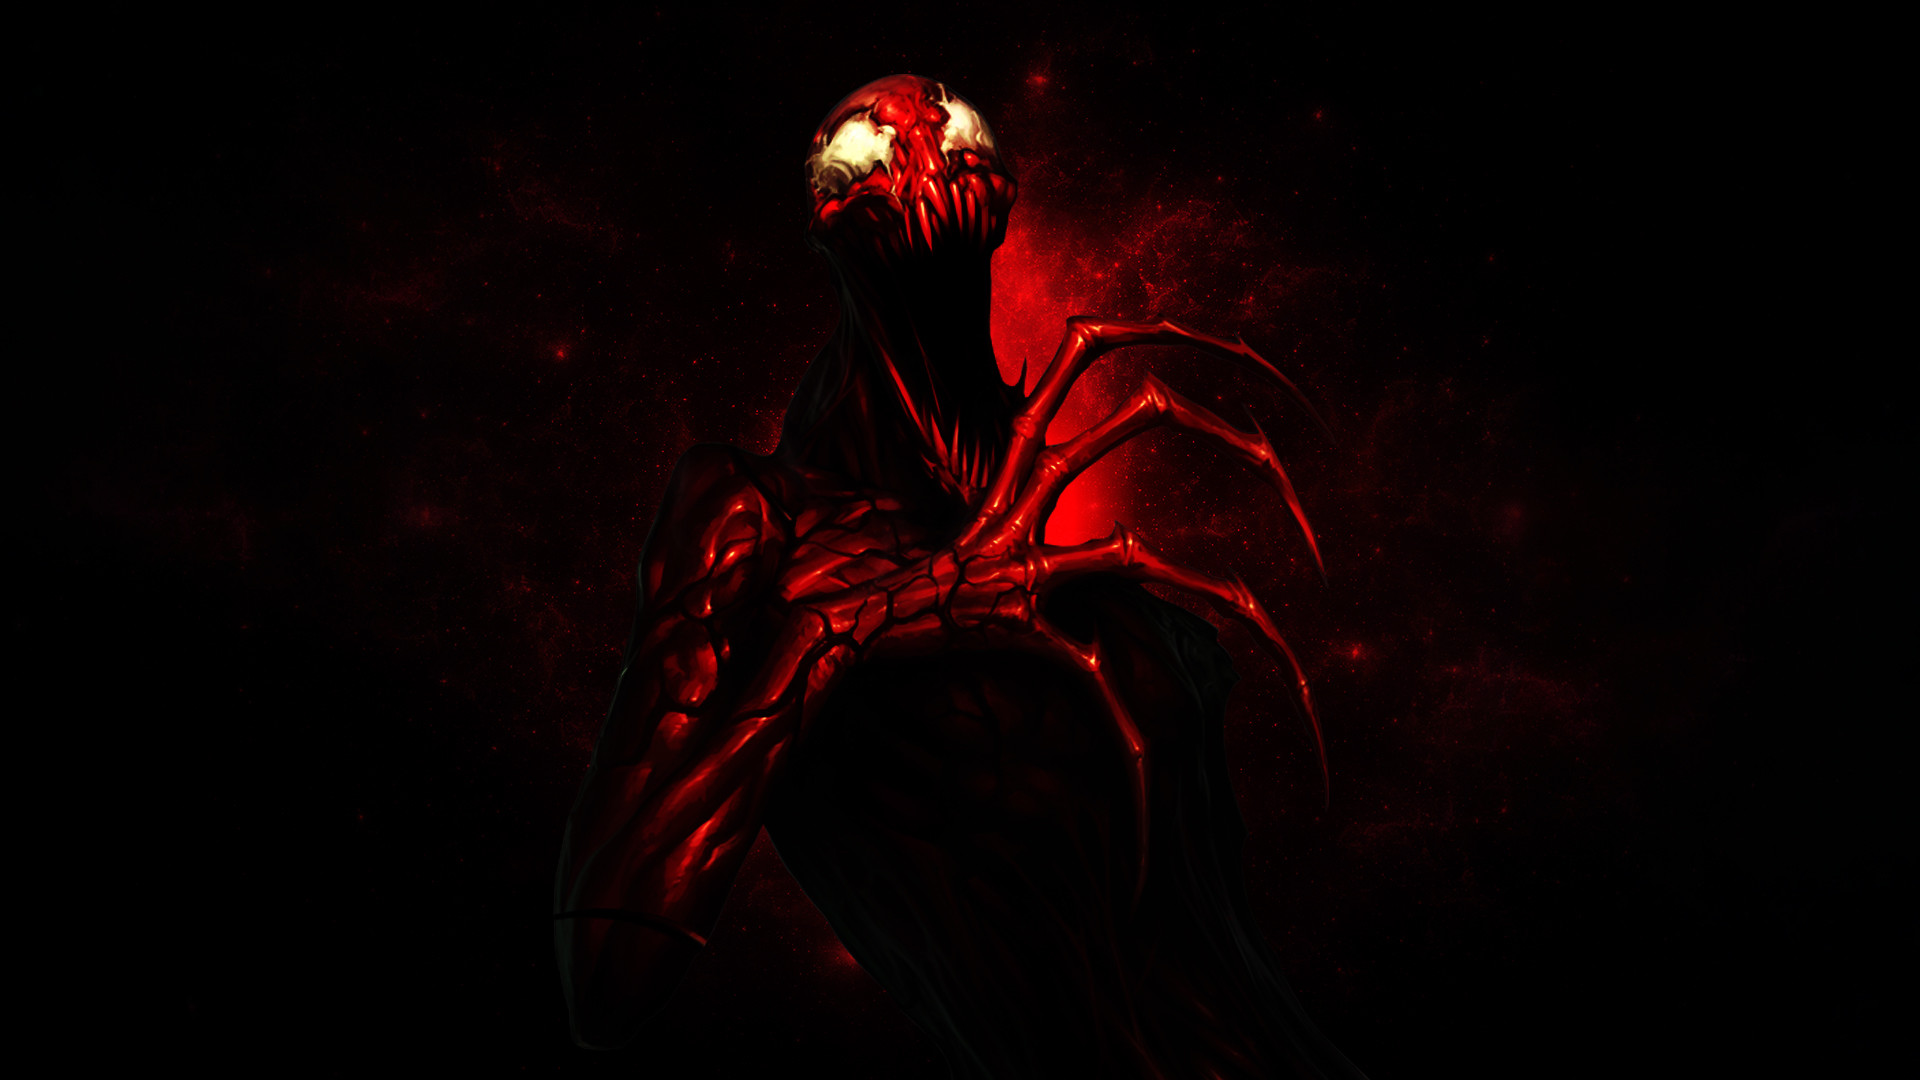 Res: 1920x1080, Carnage wallpapers widescreen